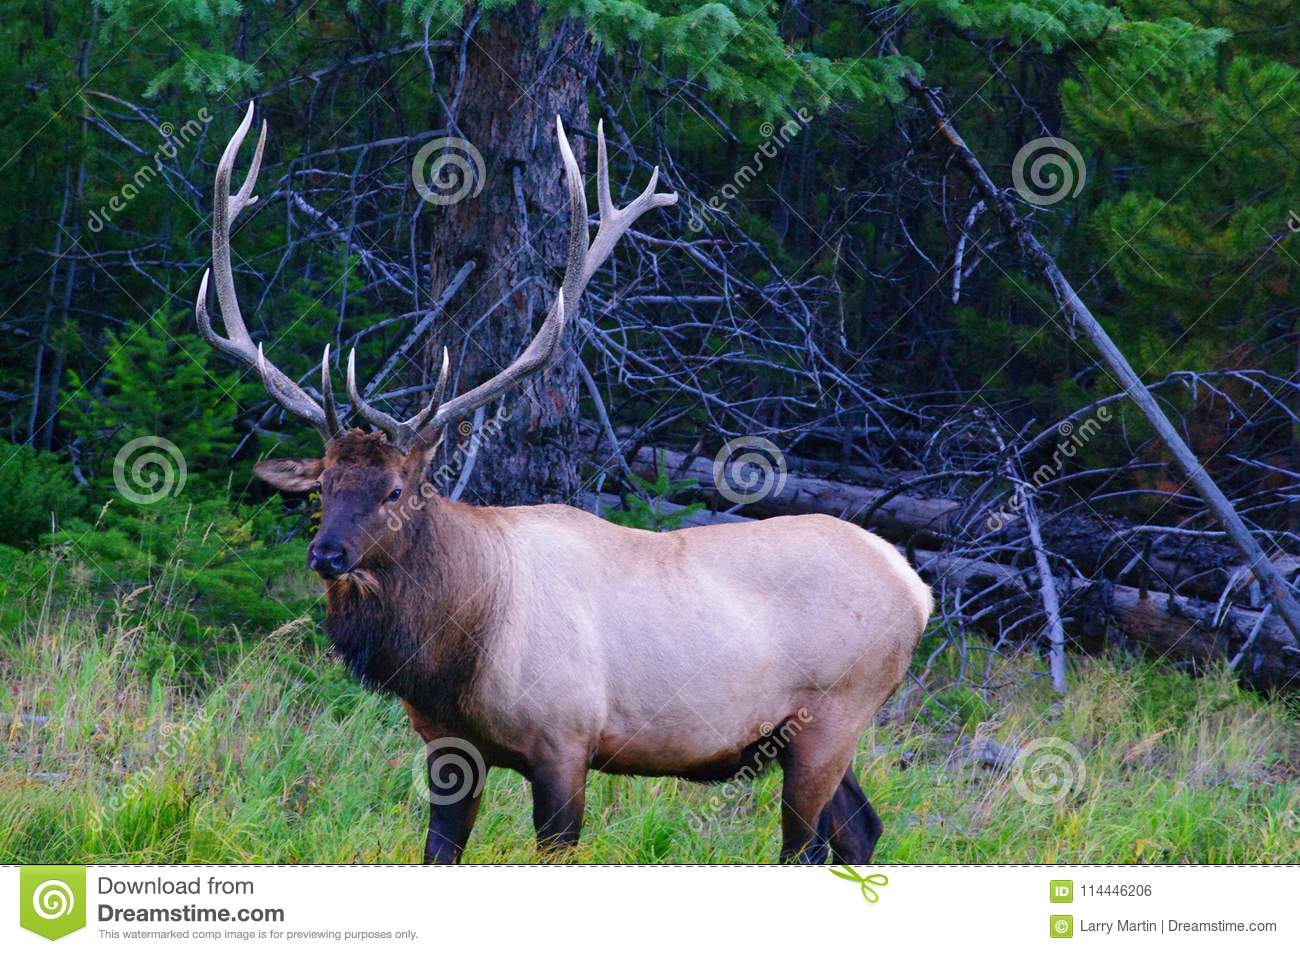 Bulls 710 to 730 lb, 4.9 feet at the. Royal Bull Rocky Mountain Elk Stock Photo Image Of Subspecies Royal 114446206